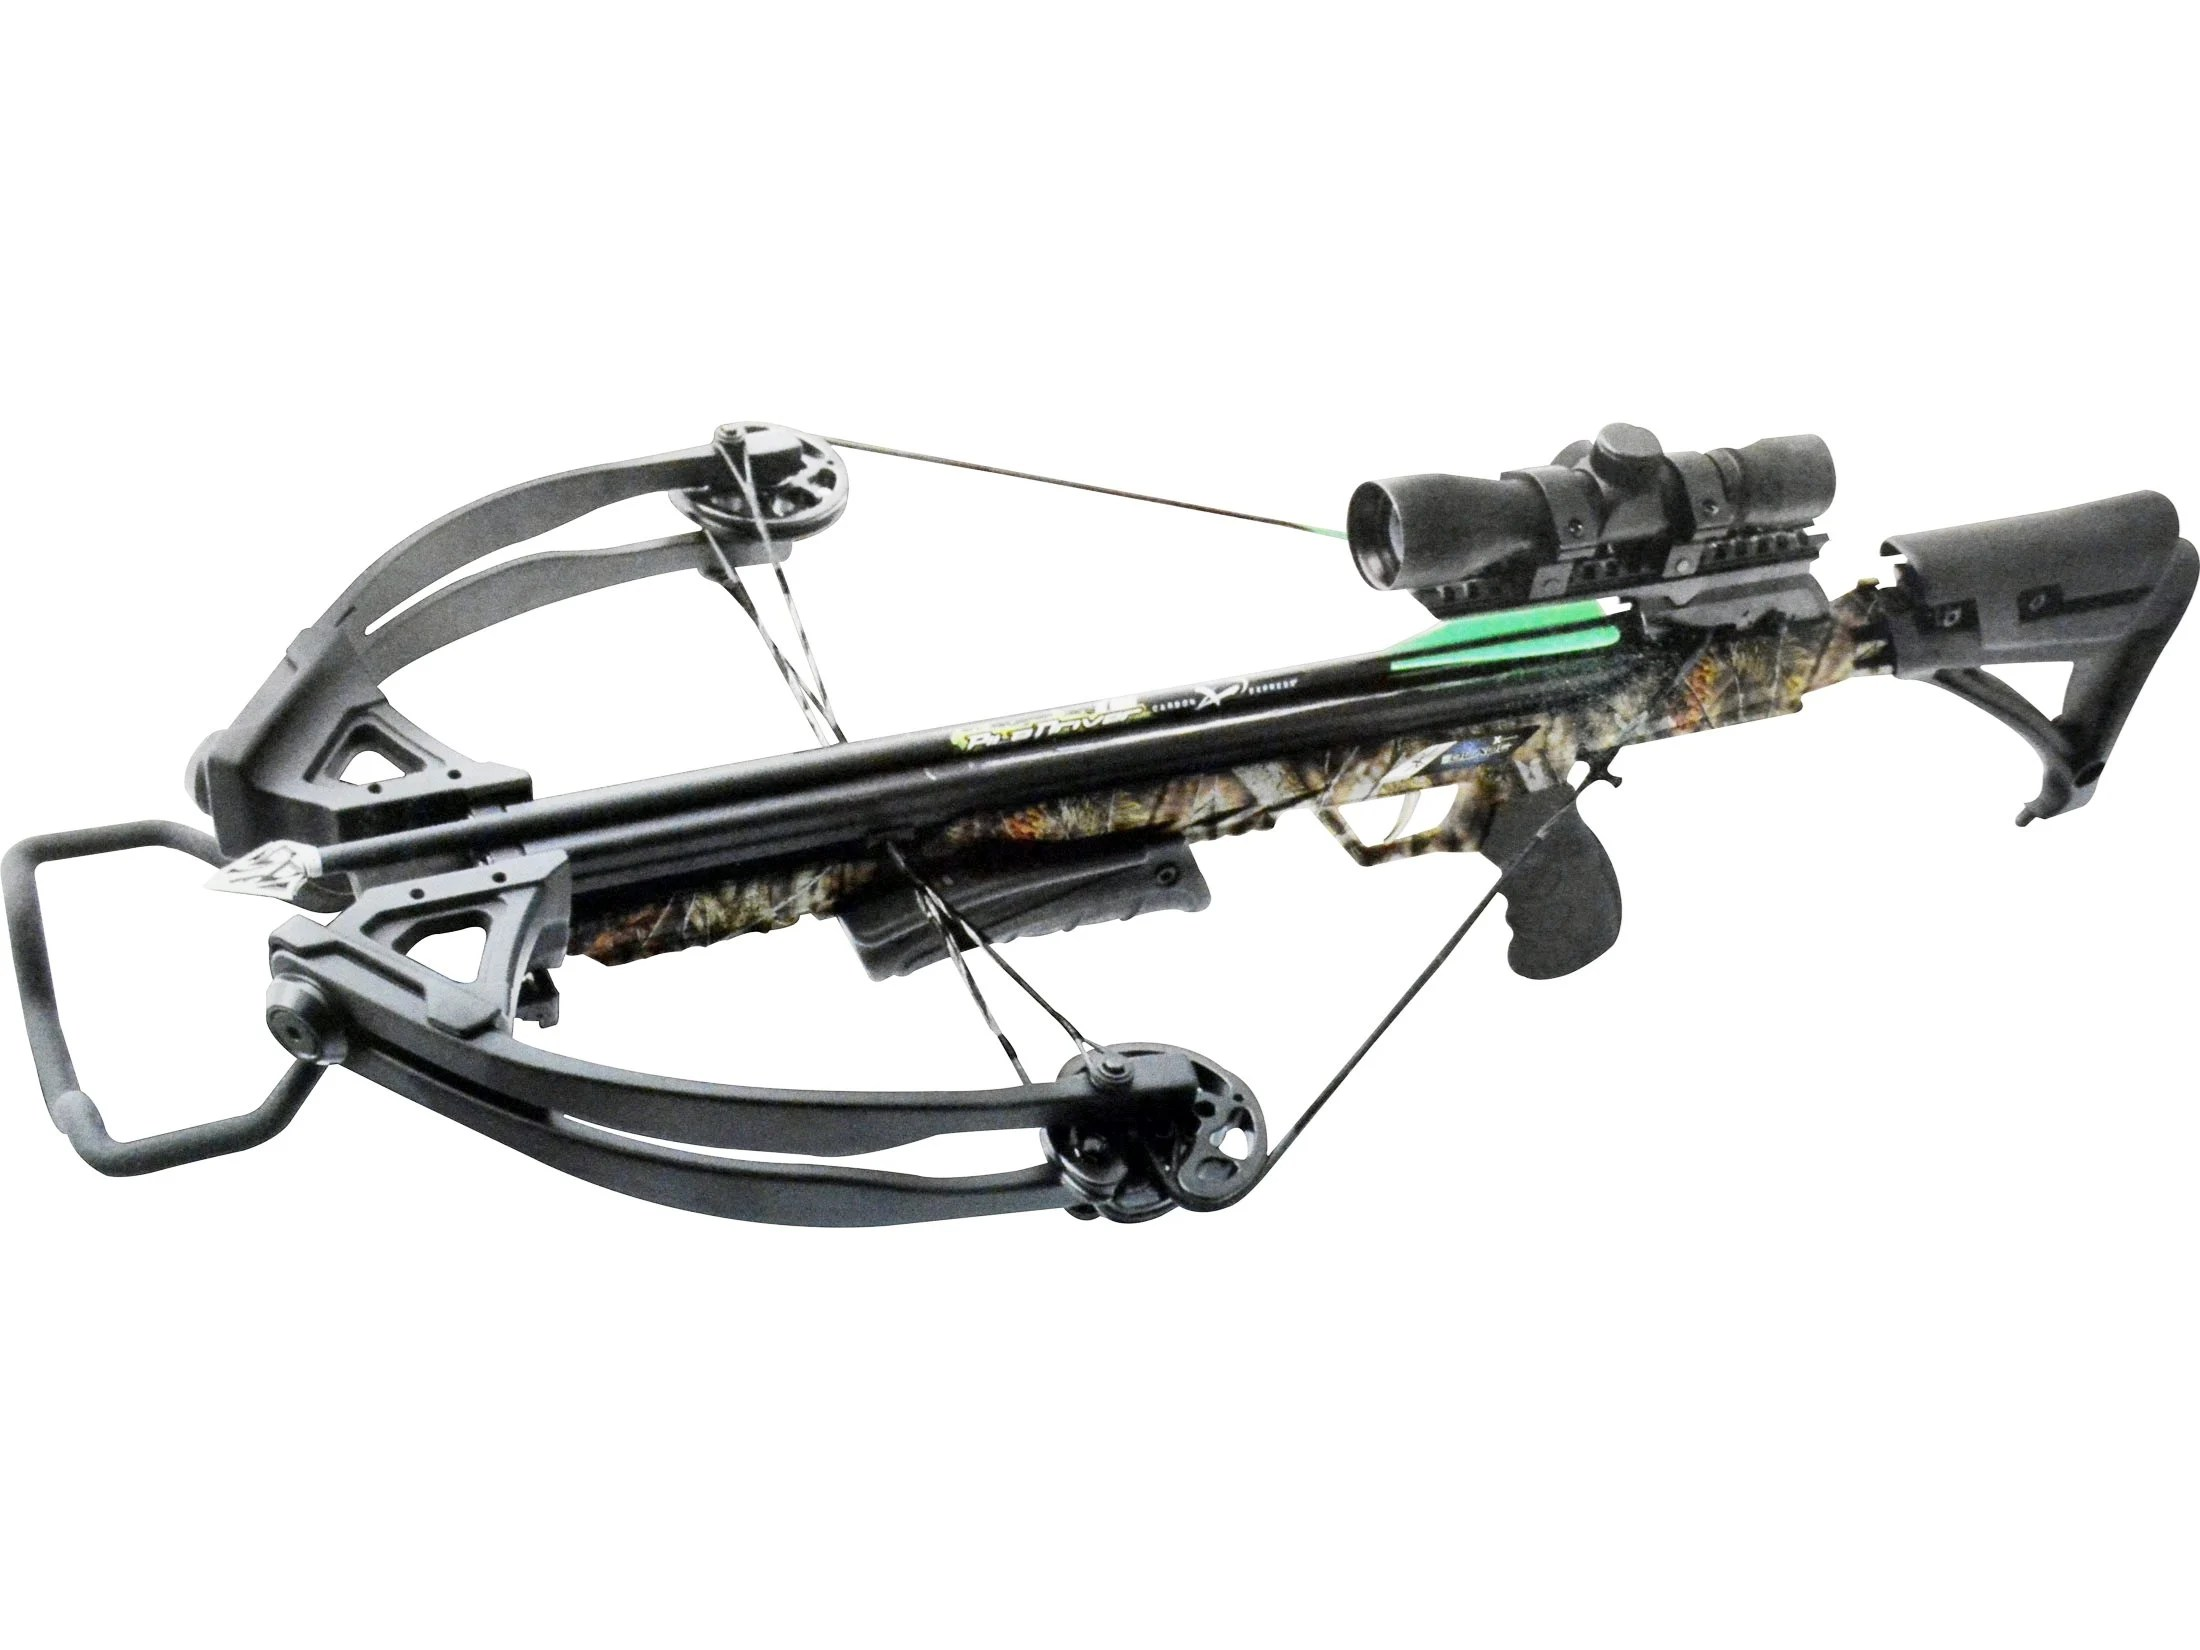 Carbon Express X-Force Blade Pro Crossbow with Cocking